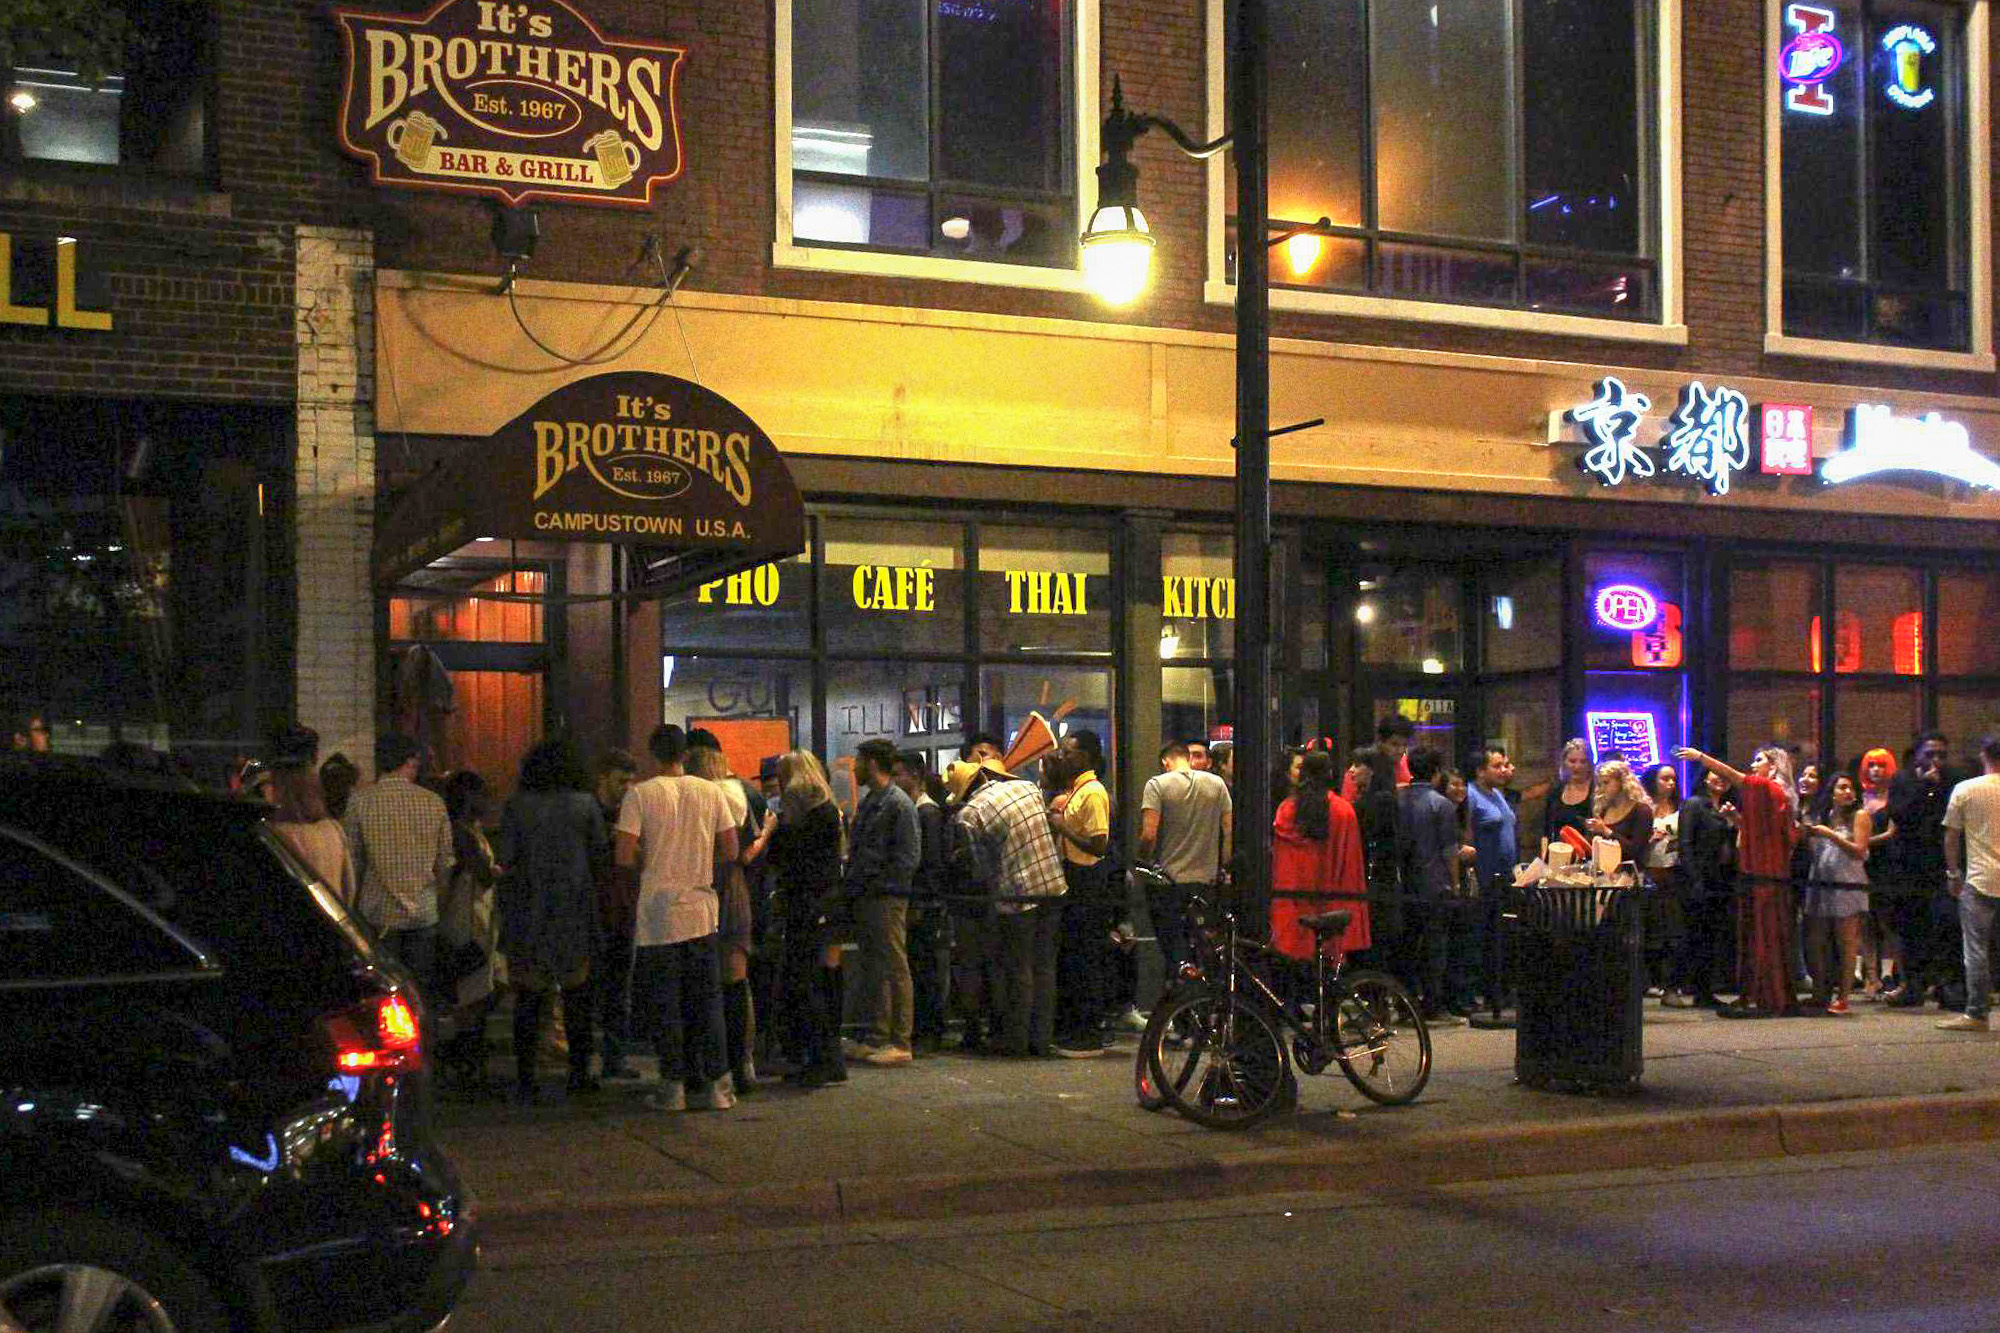 Students wait in line at Brother's Bar.